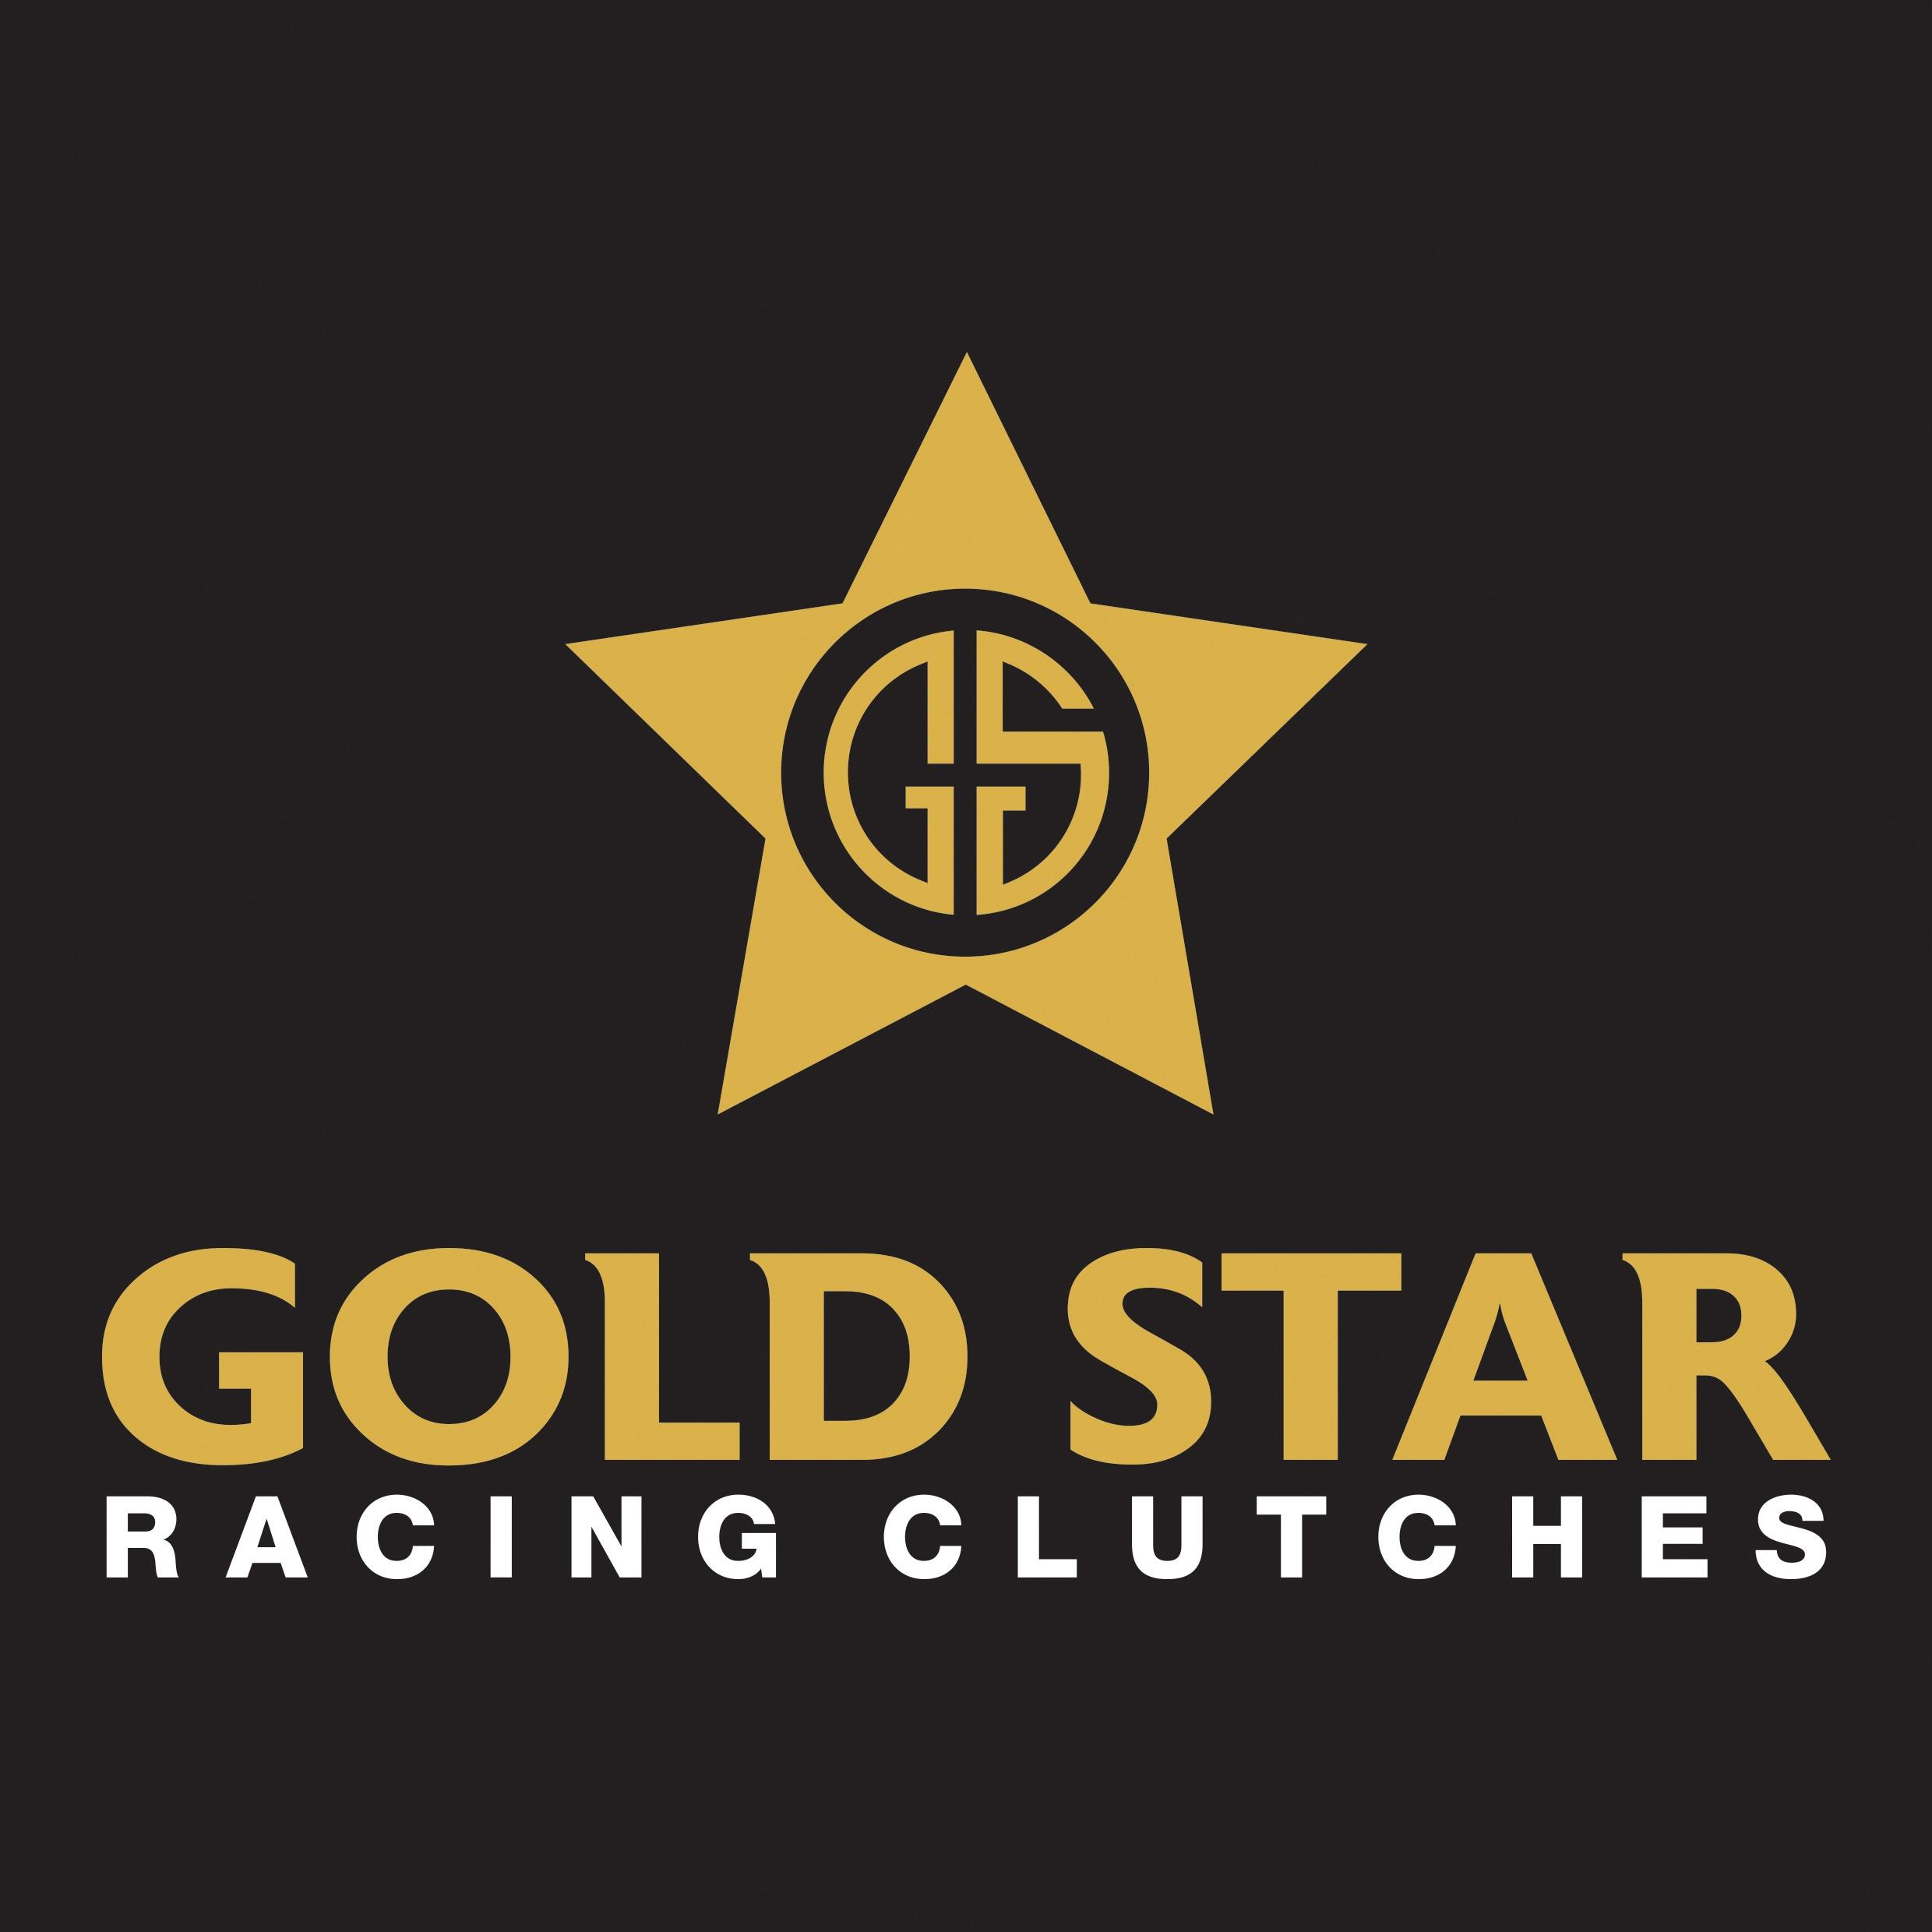 gold star racing clutches image 4